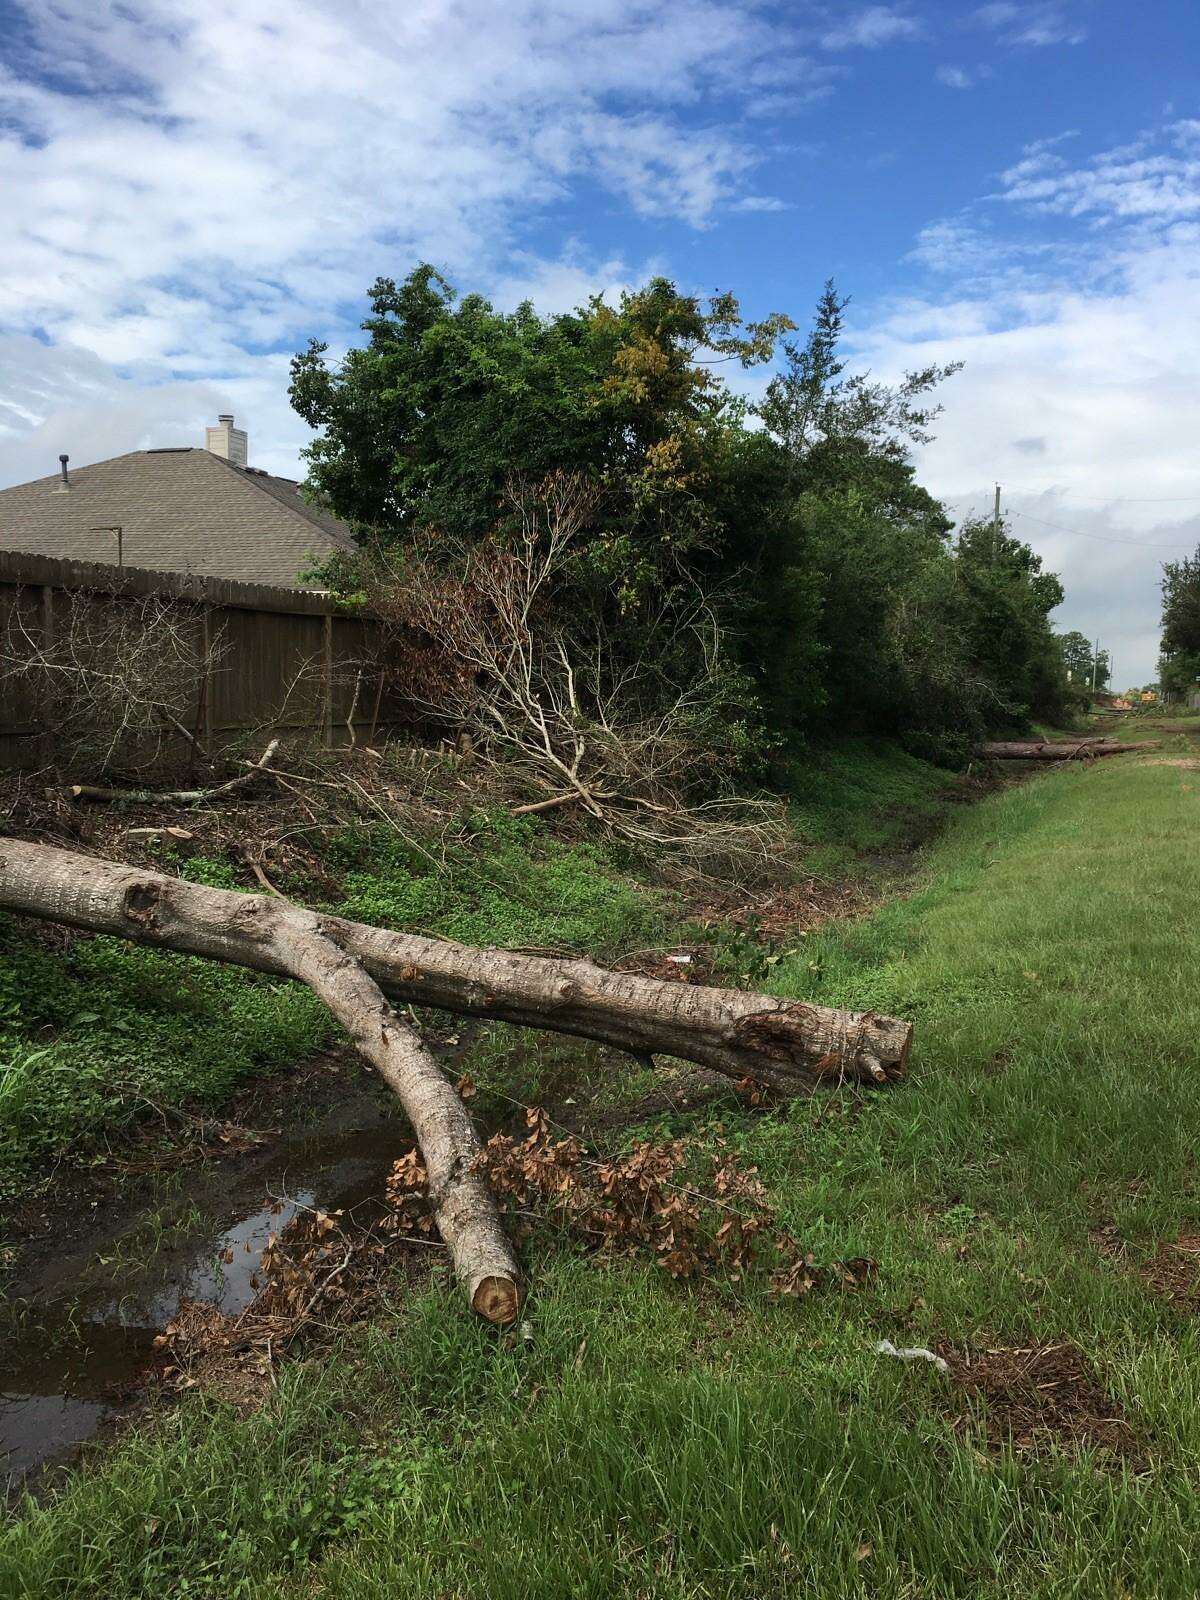 Clearing large trees in Magnolia ditch is part of the flood-mitigation project under way in Pine Forest subdivision. This view is west of where the contractor,Reytec Construction Resources Inc. of Houston, is working at Kathy Lane and Magnolia Street.